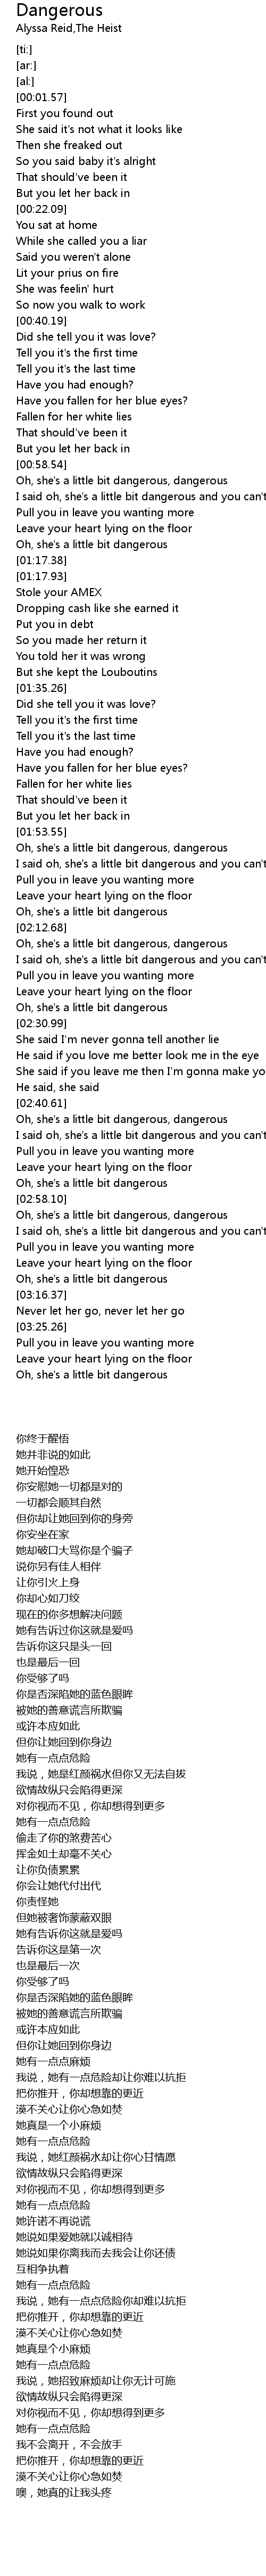 Dangerous Lyrics Follow Lyrics